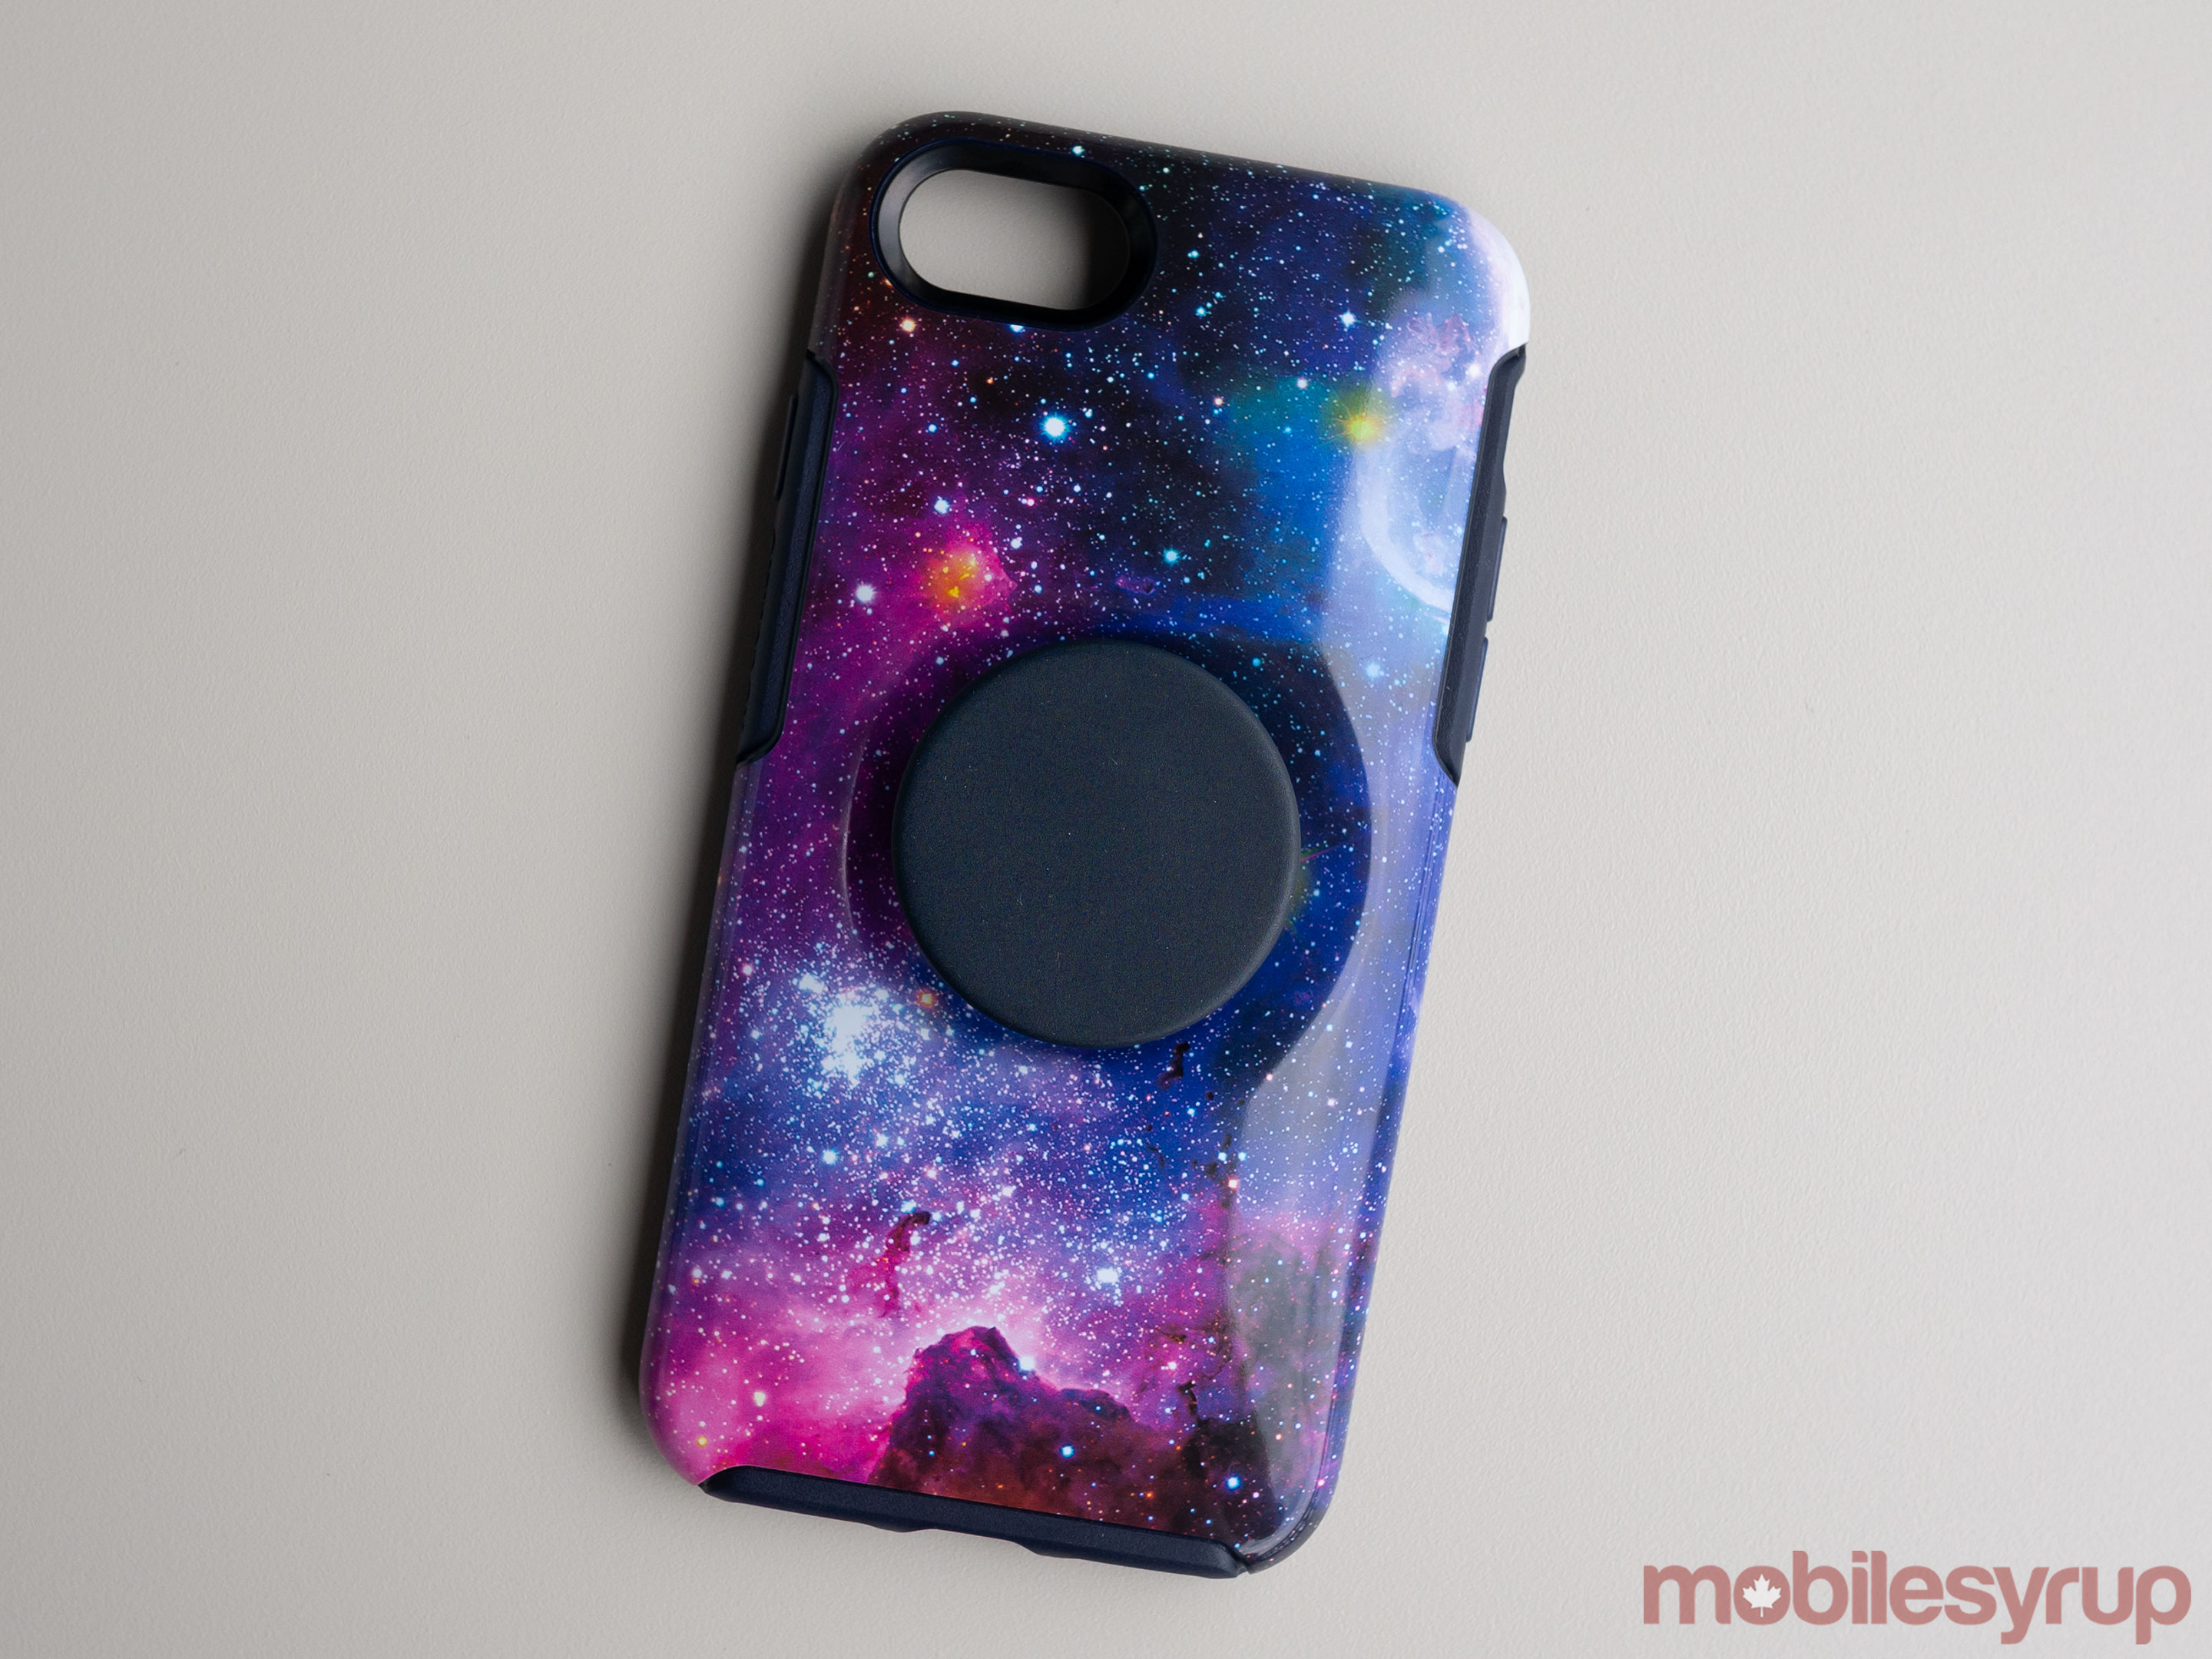 'Otter + Pop' is the OtterBox PopSocket smartphone case line of your dreams